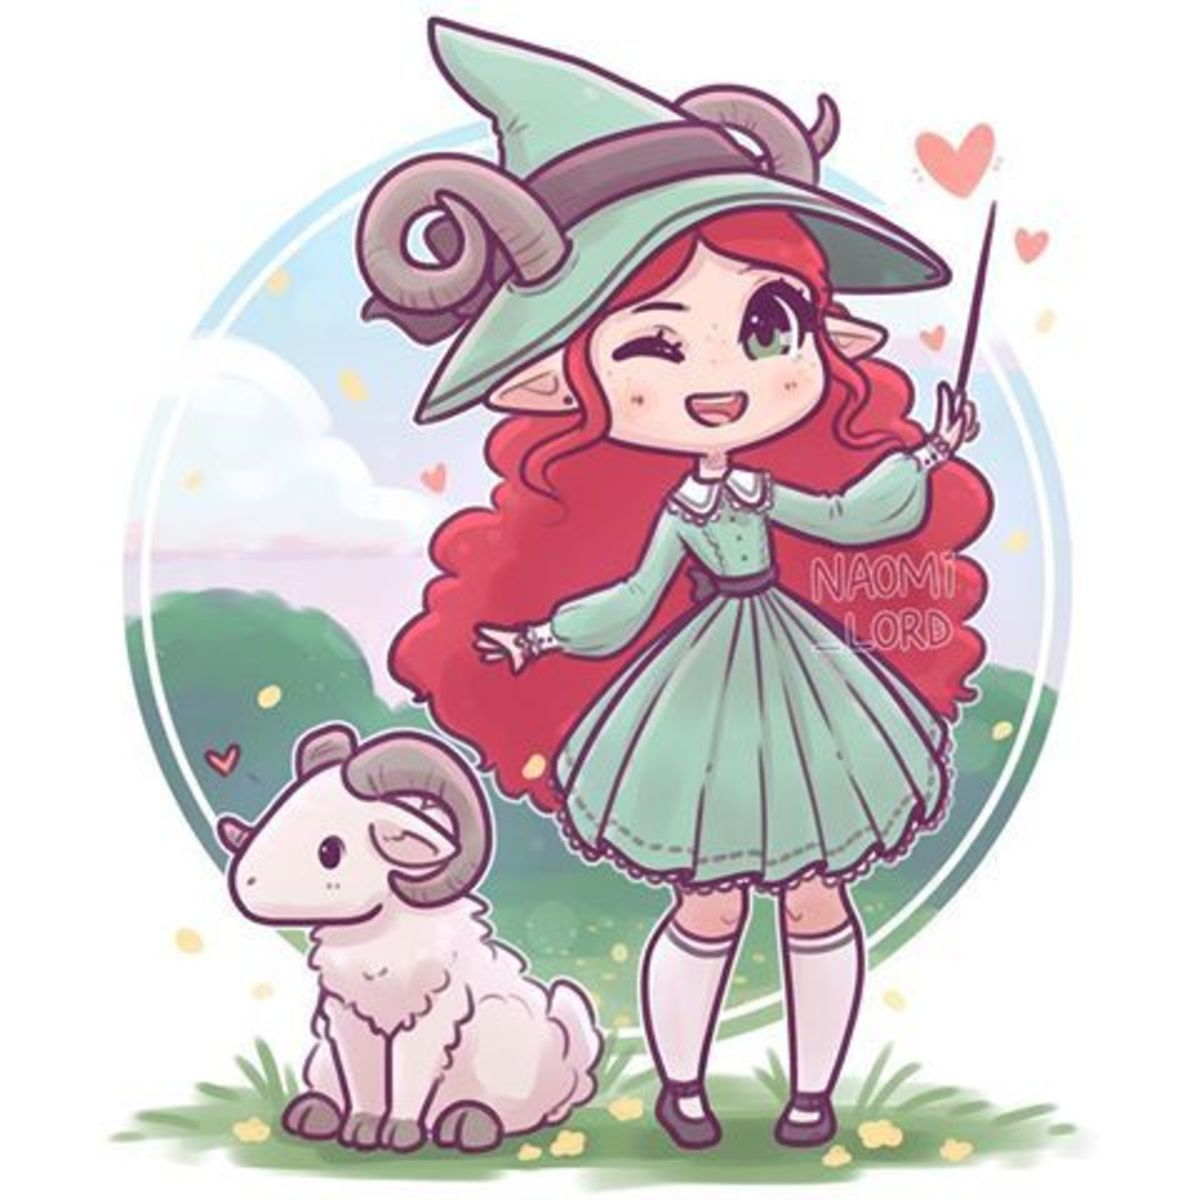 Cute Aries witch by Naomi Lord